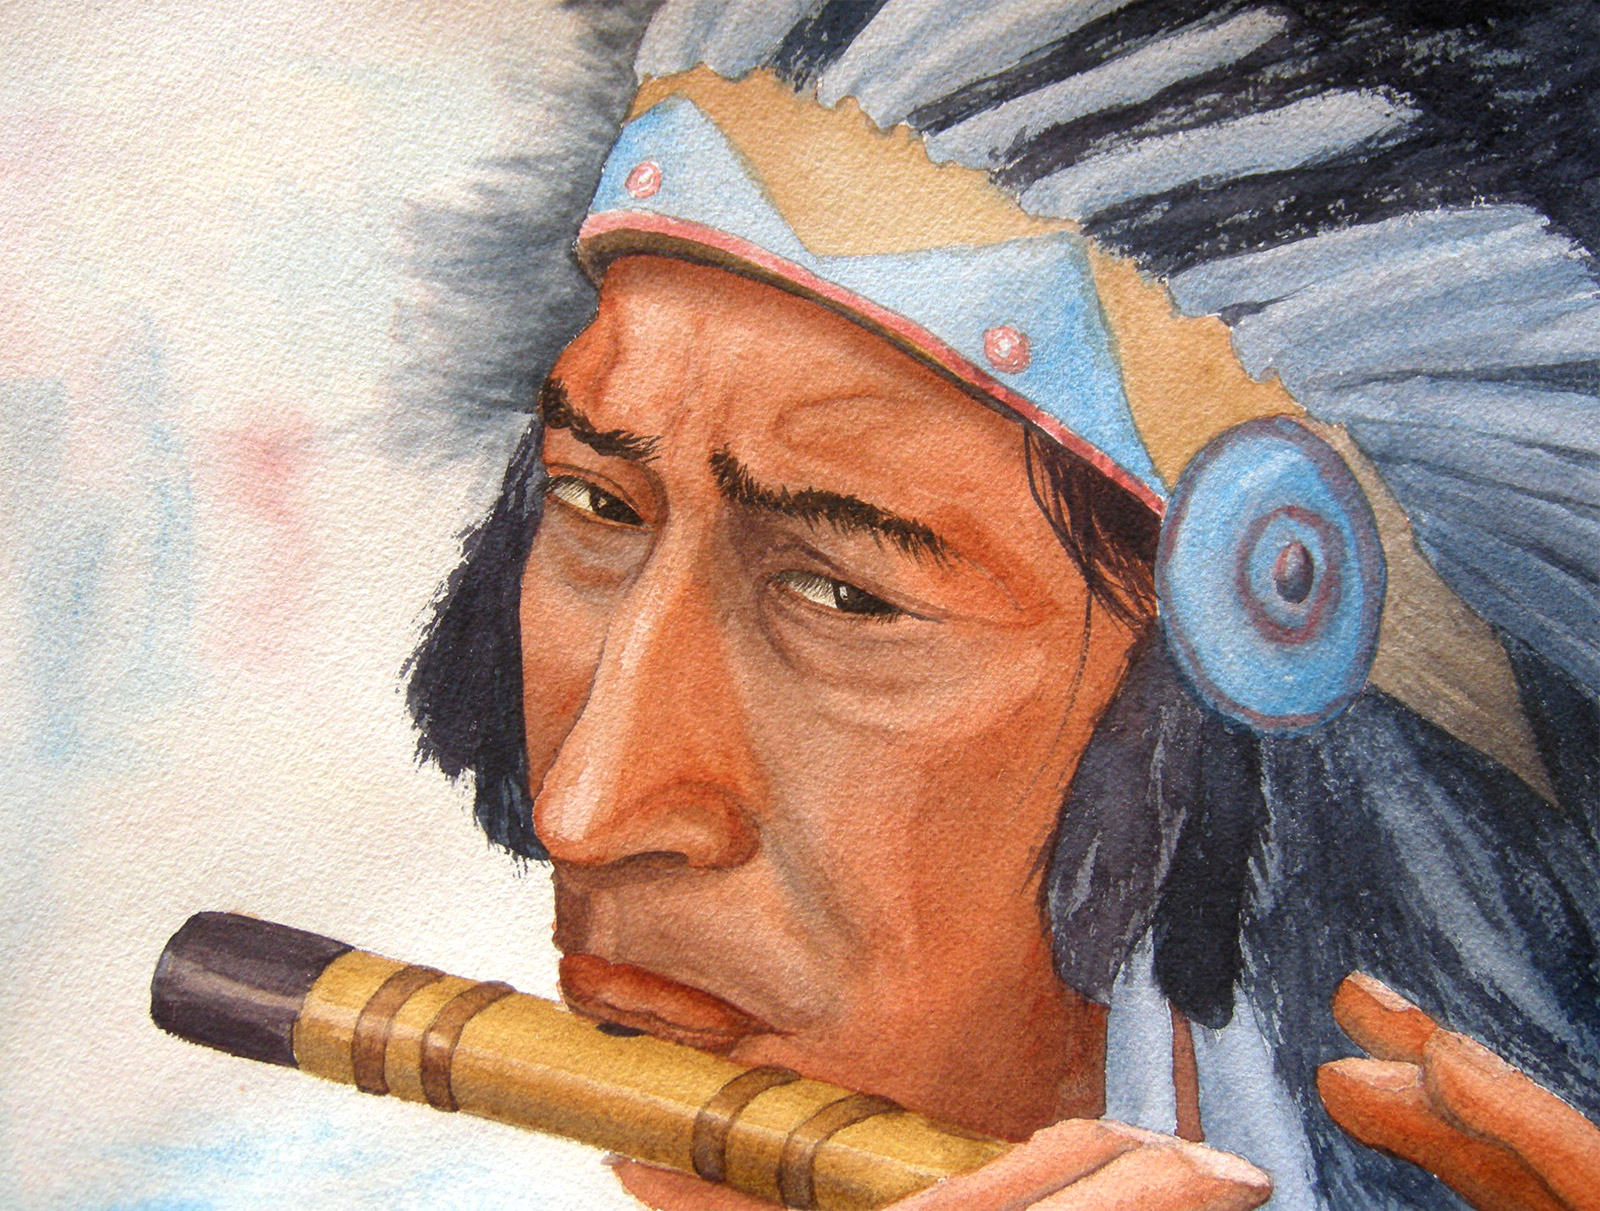 The Indian by Tatyana Deniz, watercolor on cotton, 2011